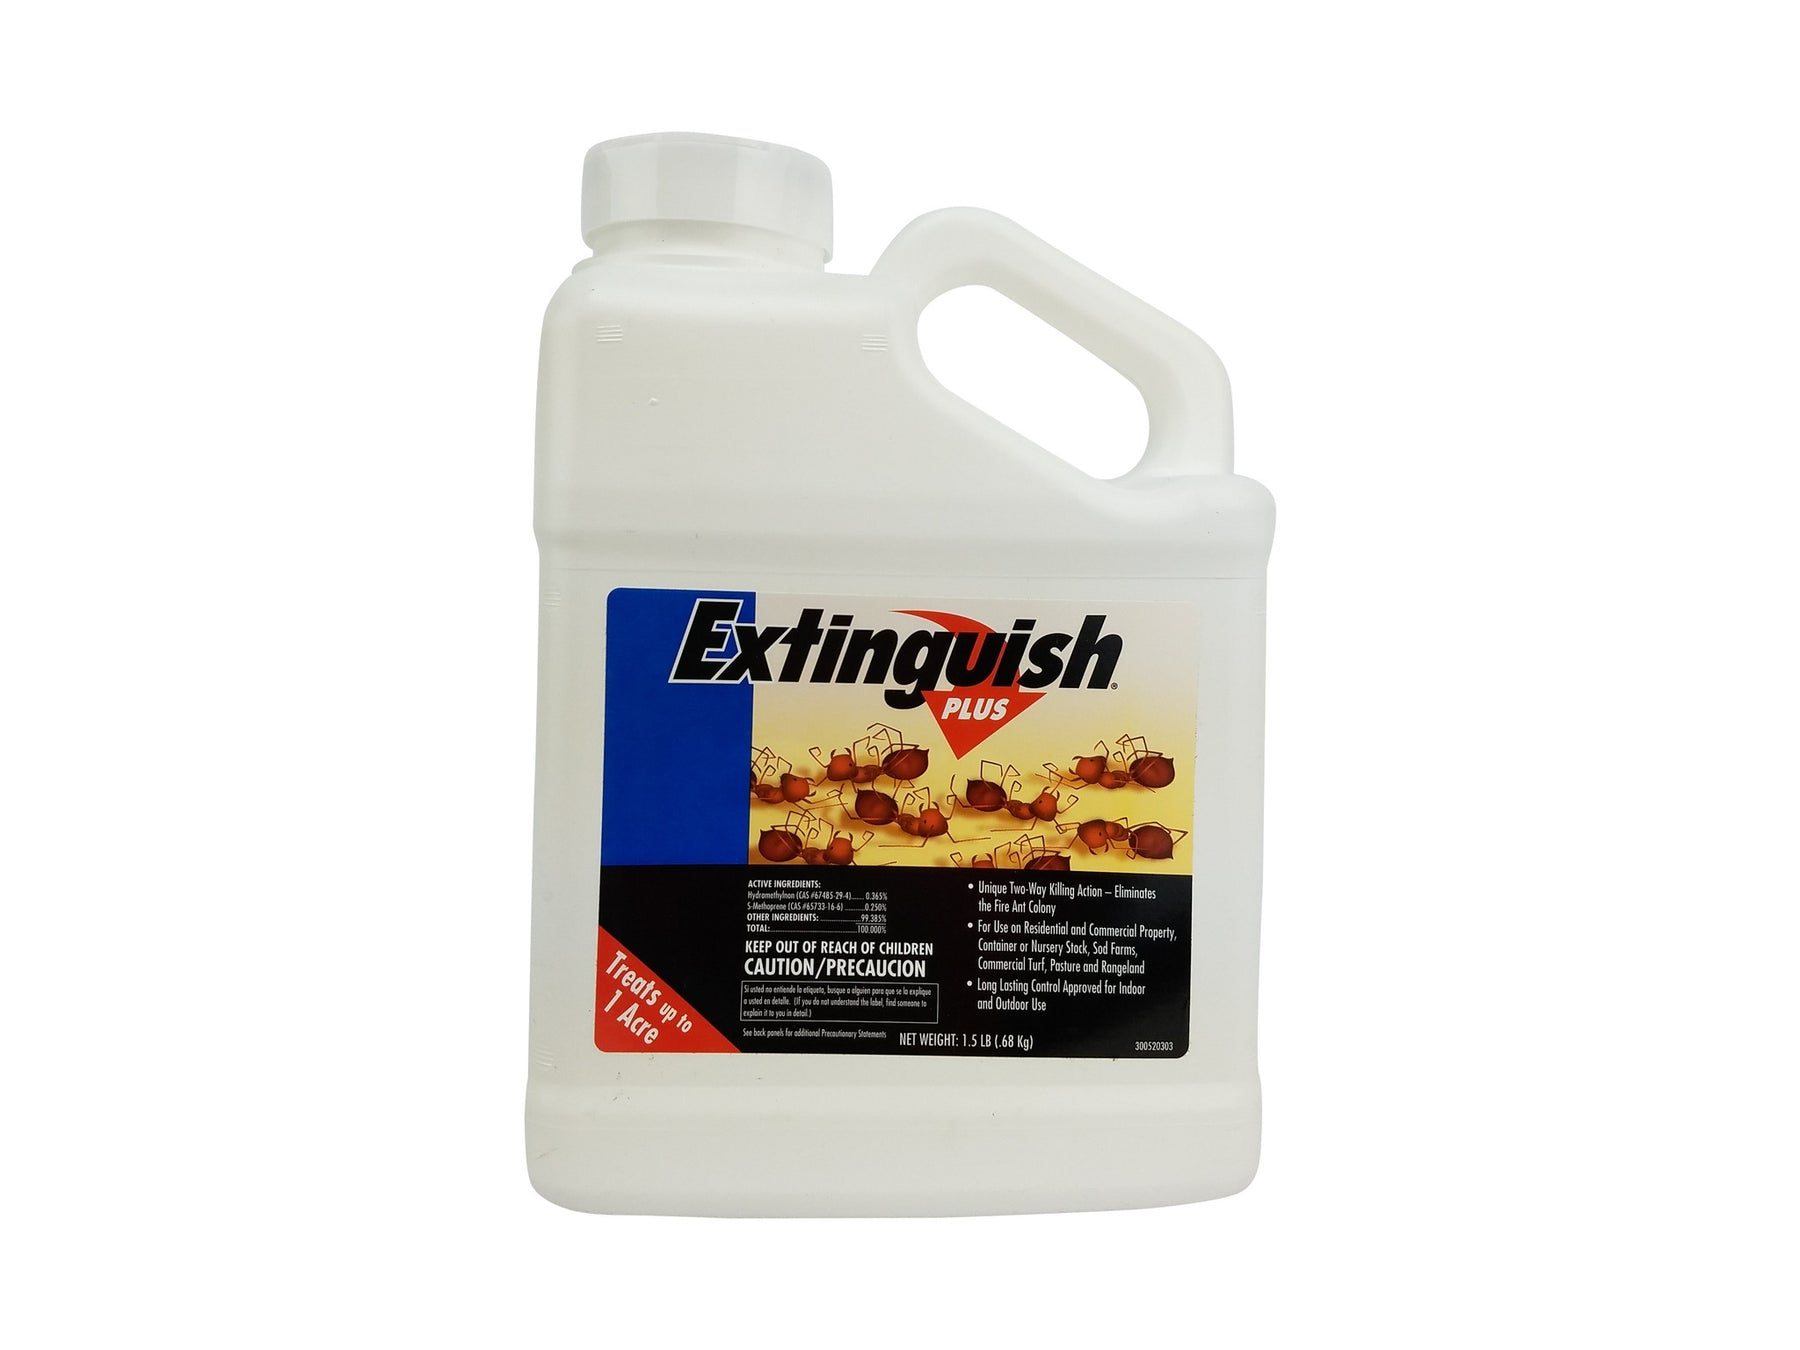 Extinguish Plus Fire Ant Control